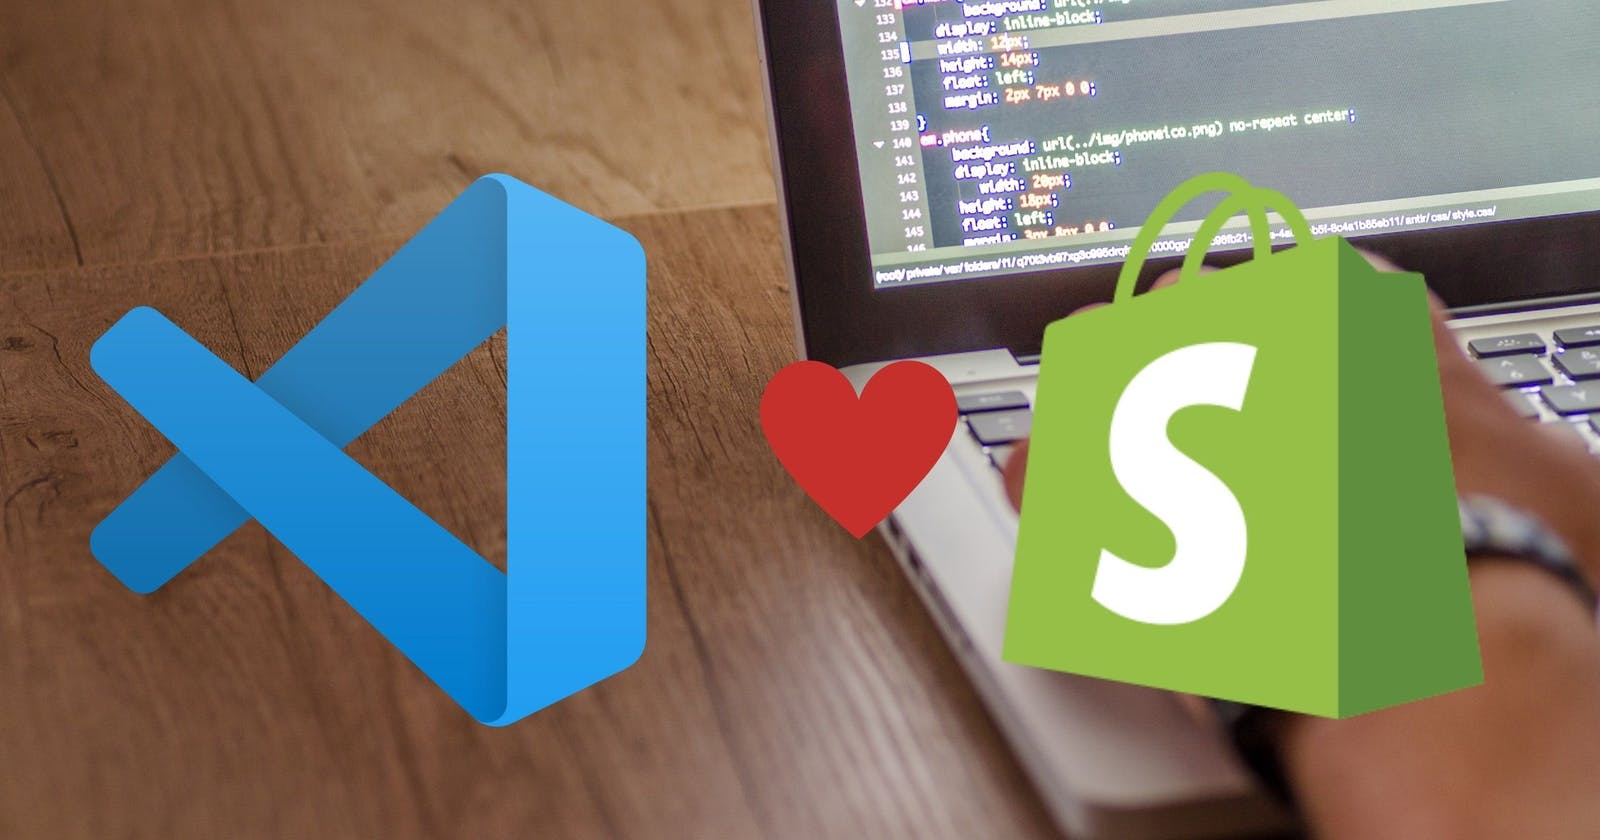 Develop Shopify NodeJS apps with VSCode Dev Container